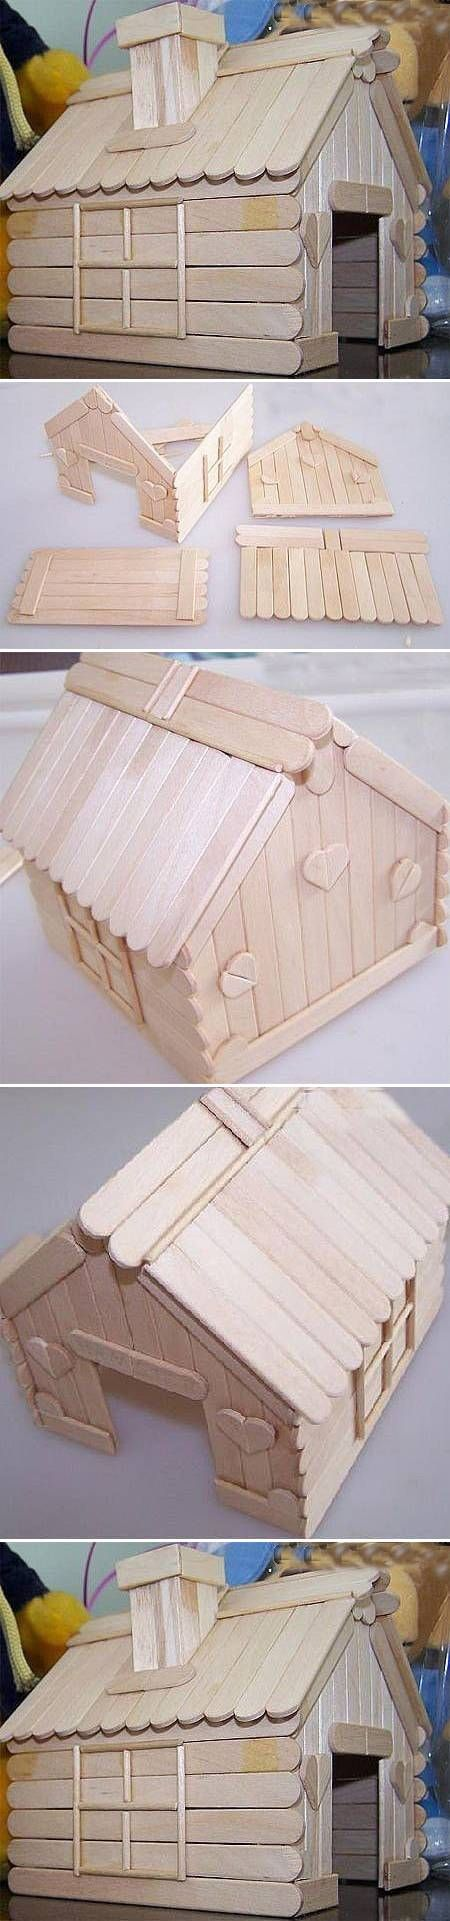 DIY Popsicle Stick House... Maybe I could make it into a stable for my little ponies? (Good thing Christmas is a while away... Plenty of time to work it out)